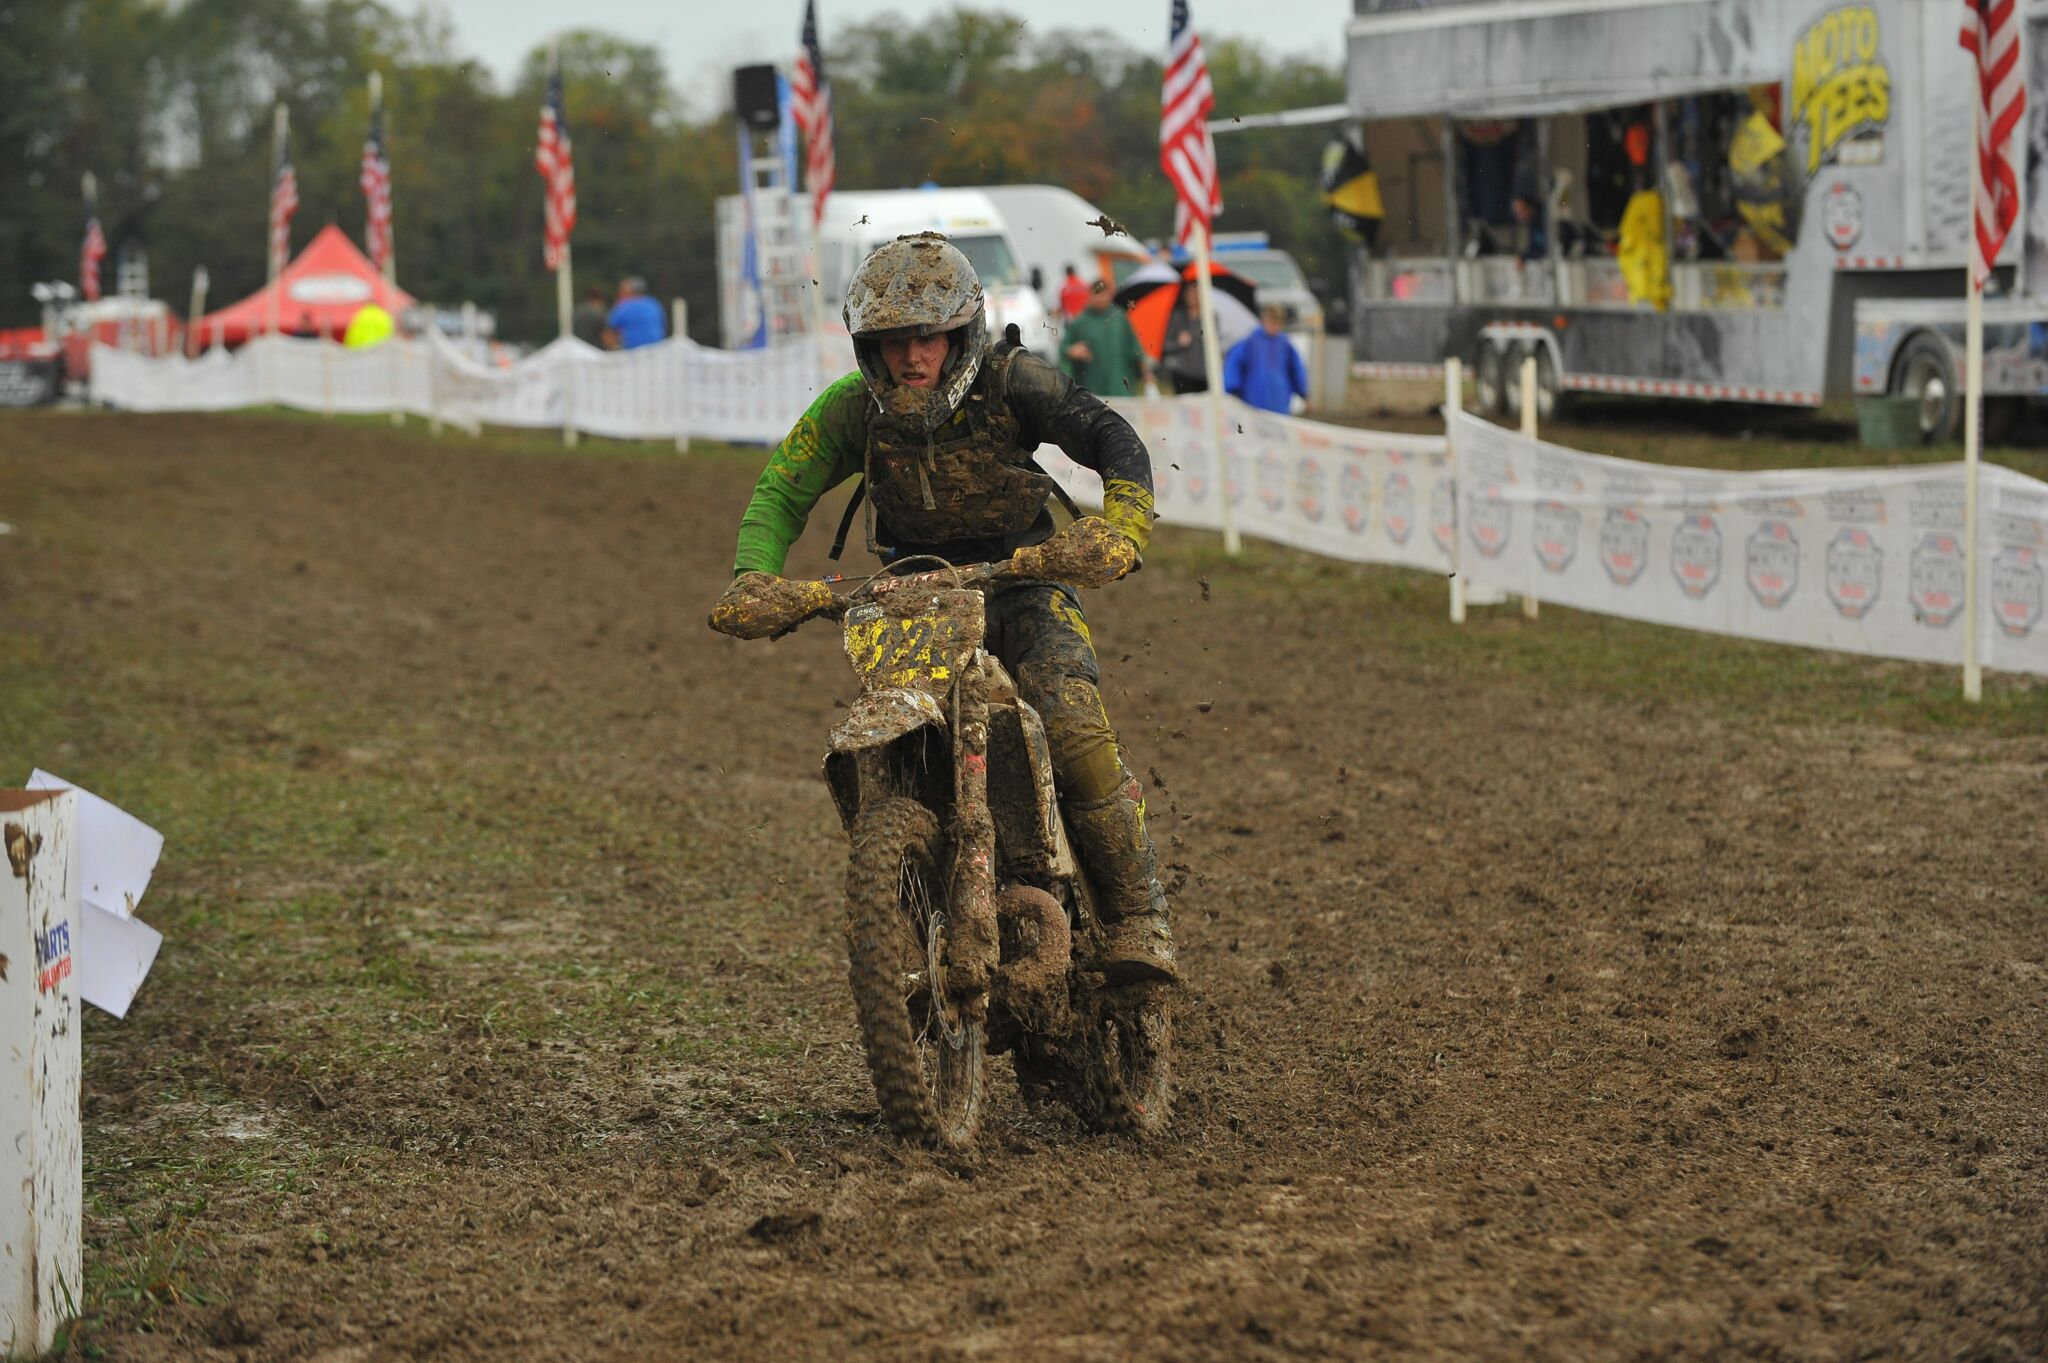 Chase Sweda battles the tough conditions at the Powerline Park GNCC - Photo By Ken Hill